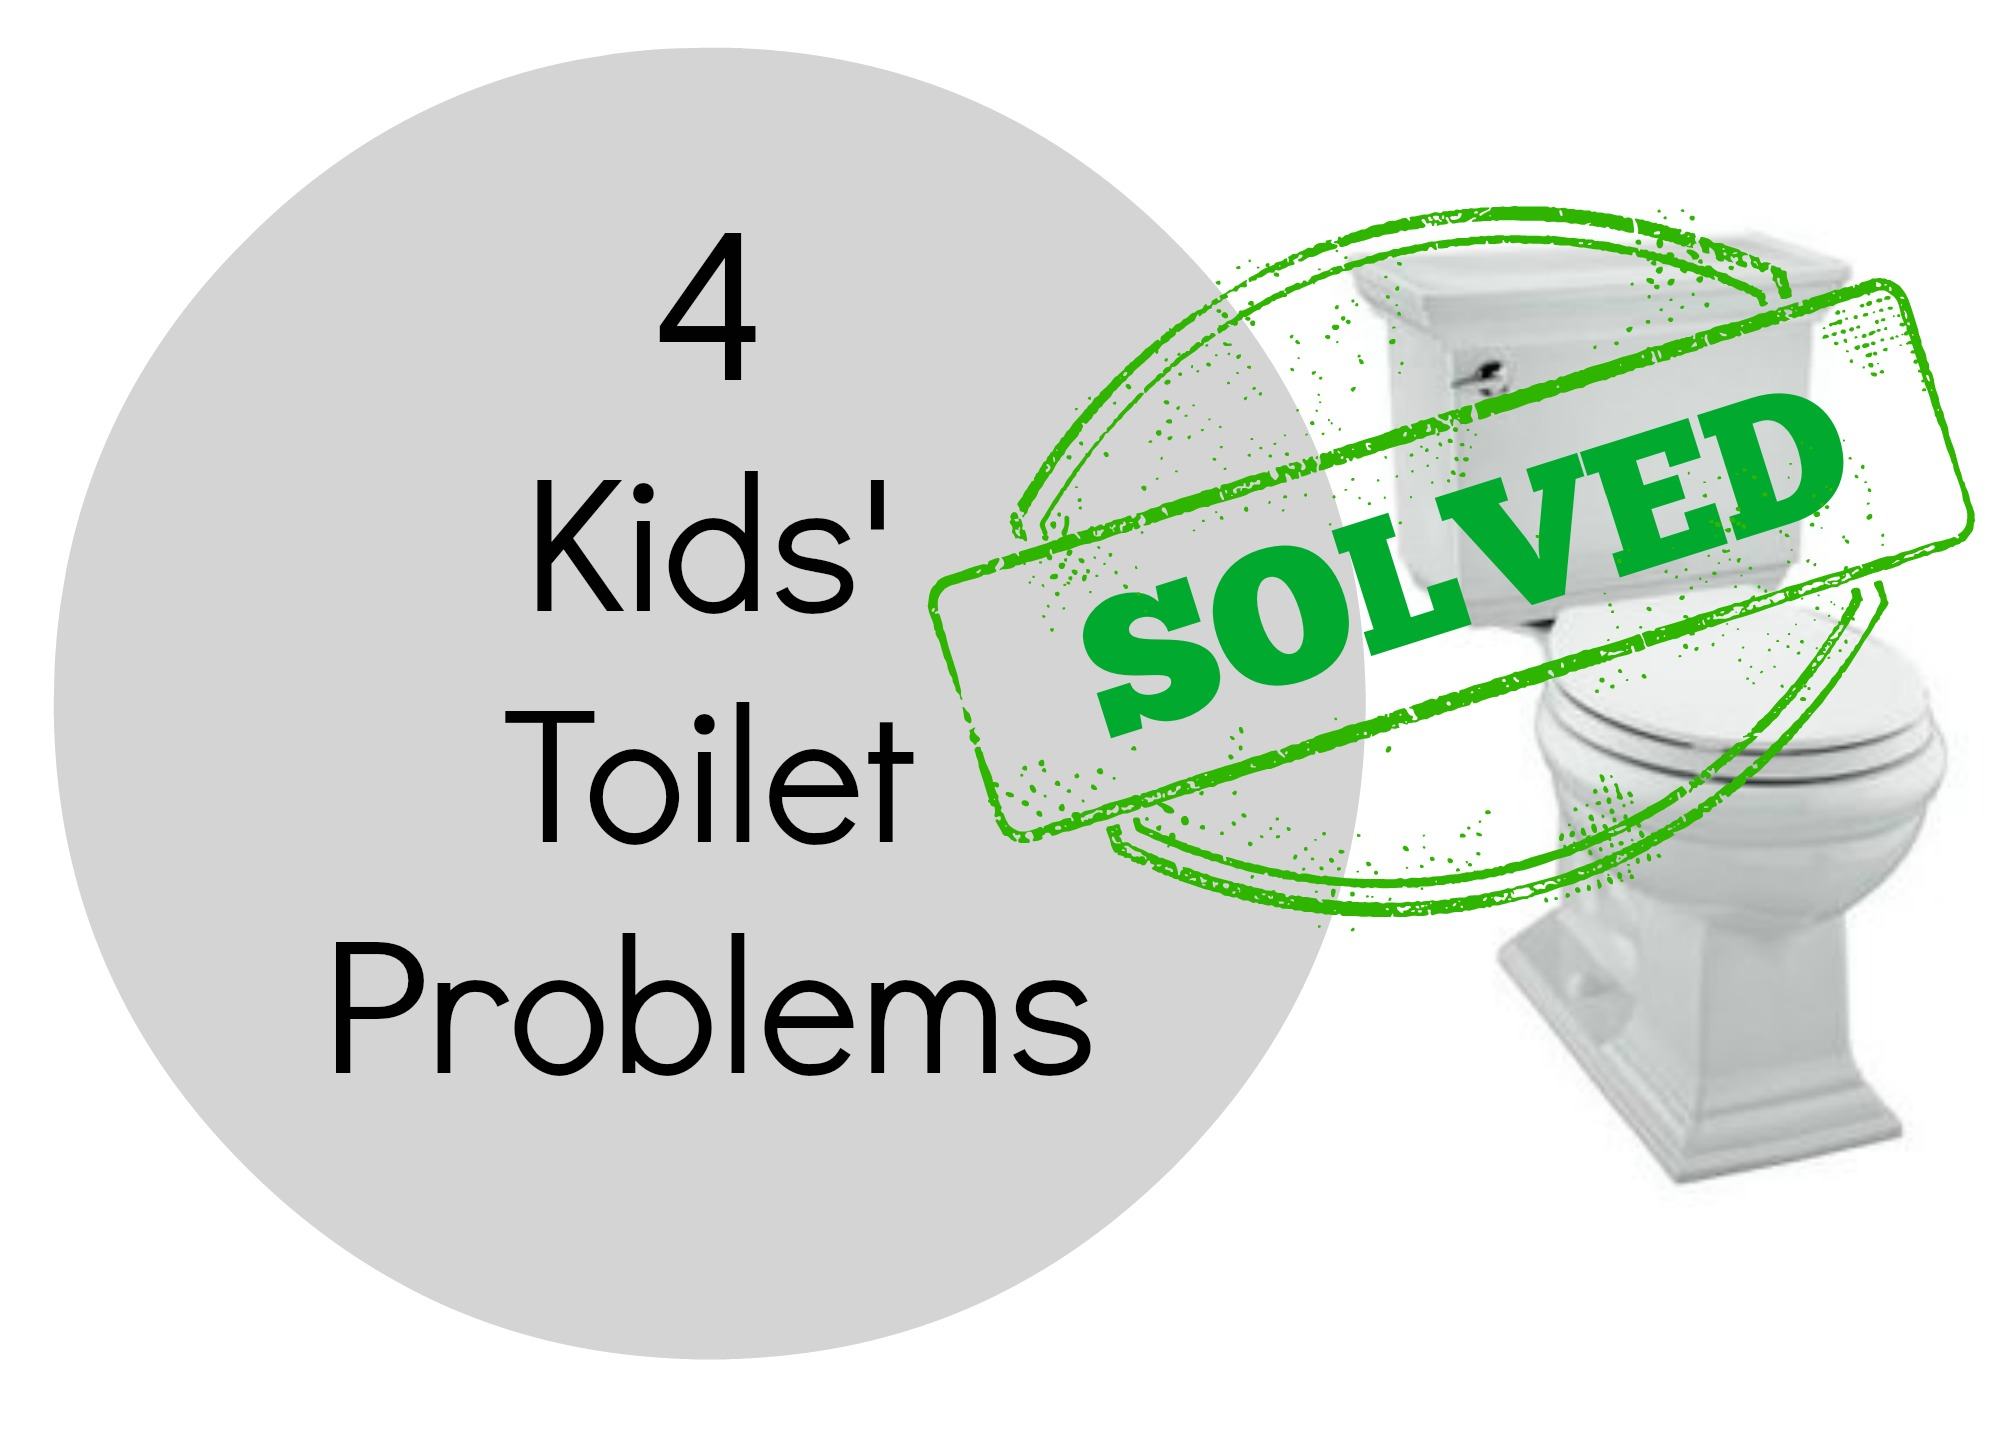 Kids' Toilet Problems Solved